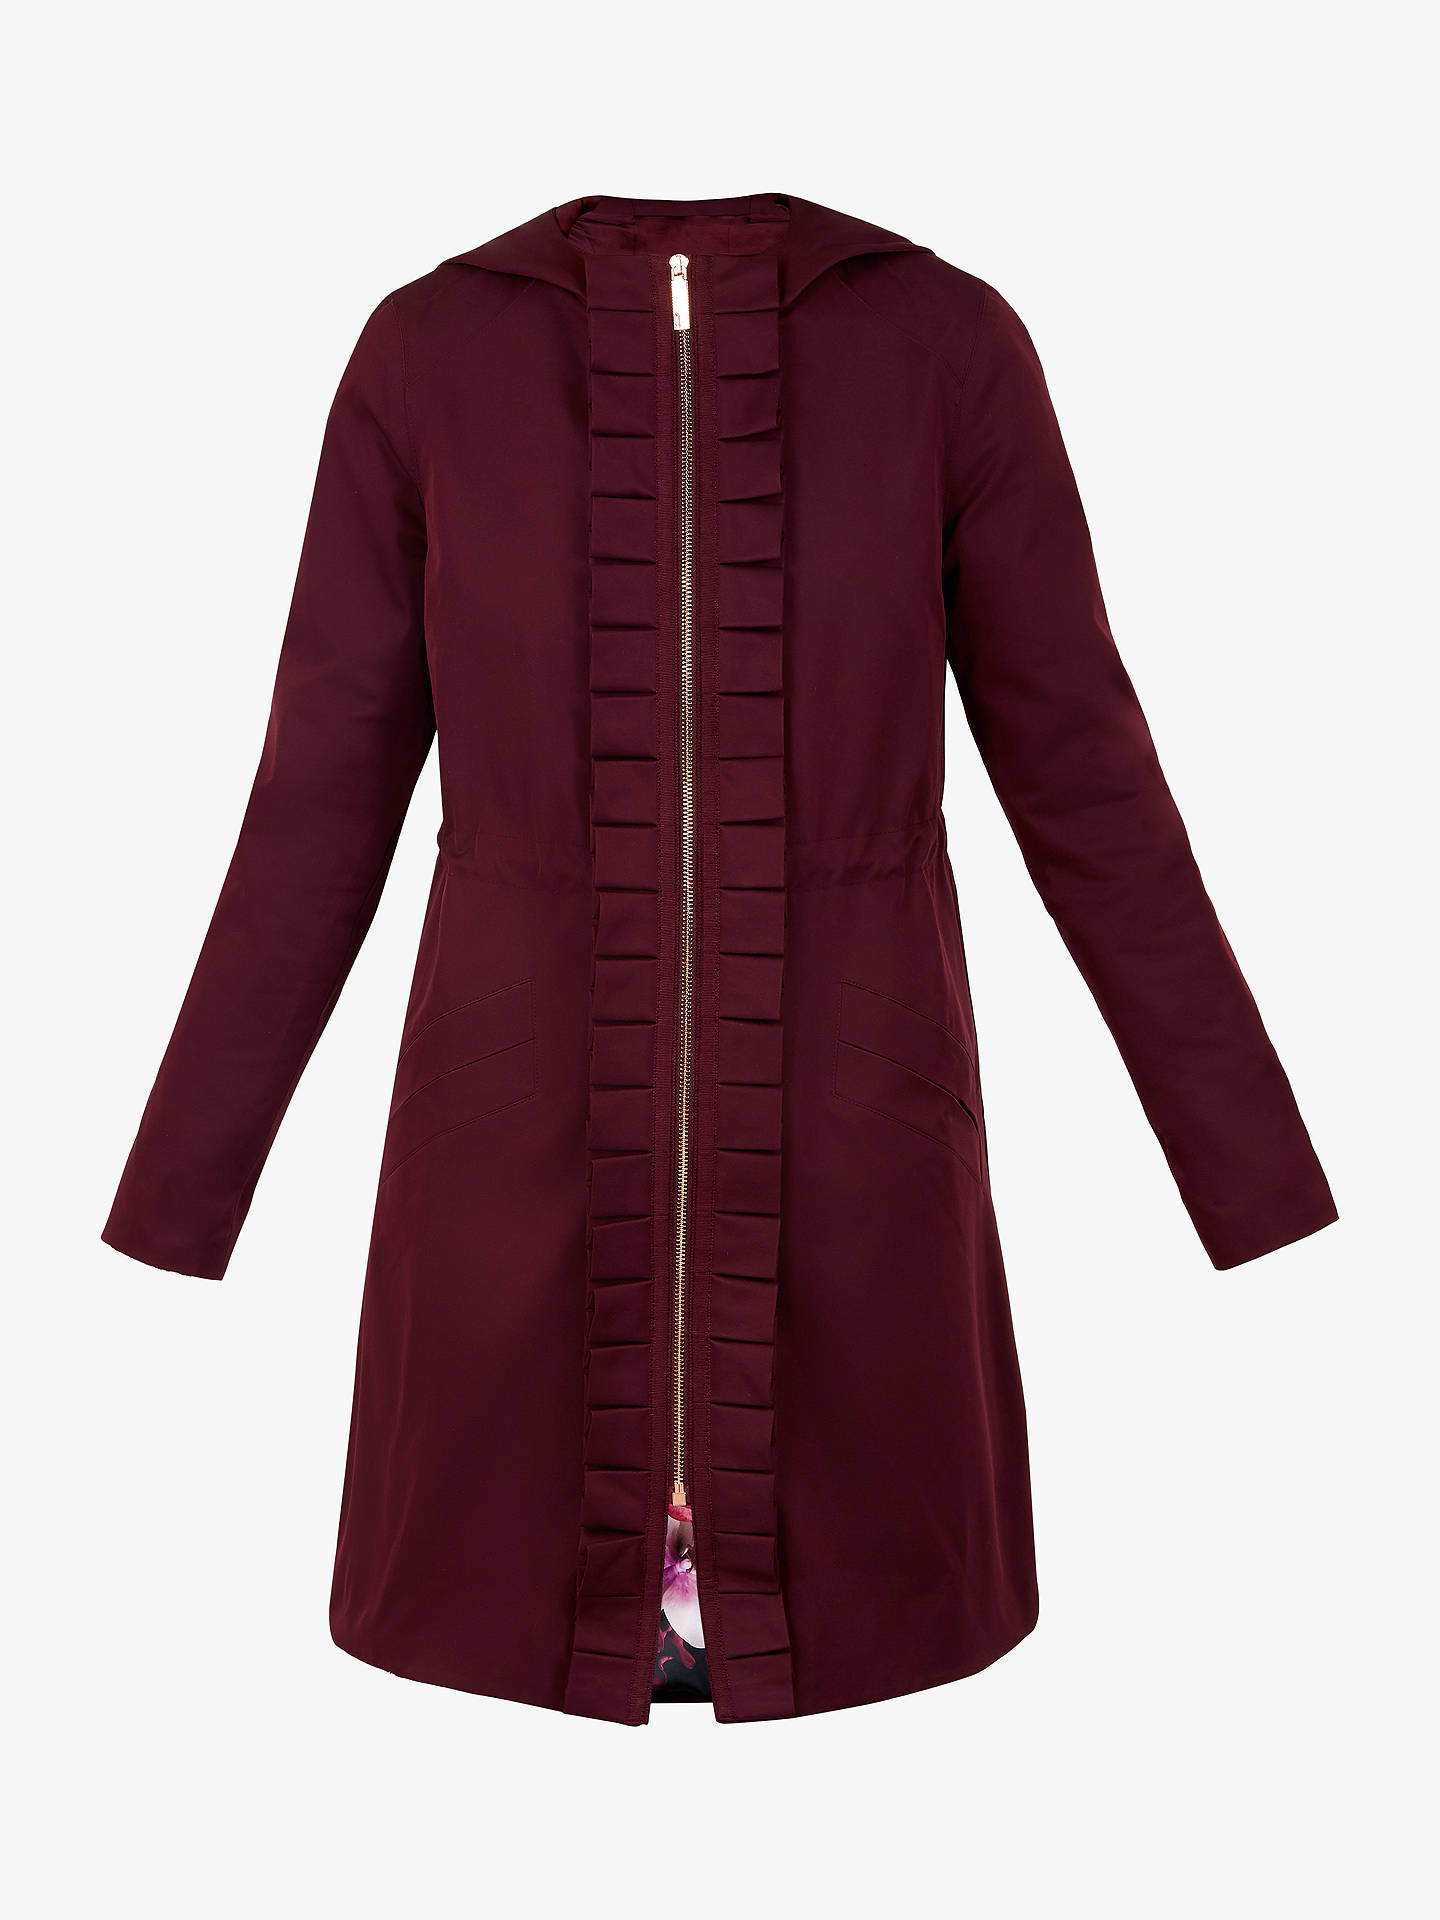 BuyTed Baker Zowe Ruffle Detail Hooded Parka, Dark Purple, XL Online at johnlewis.com